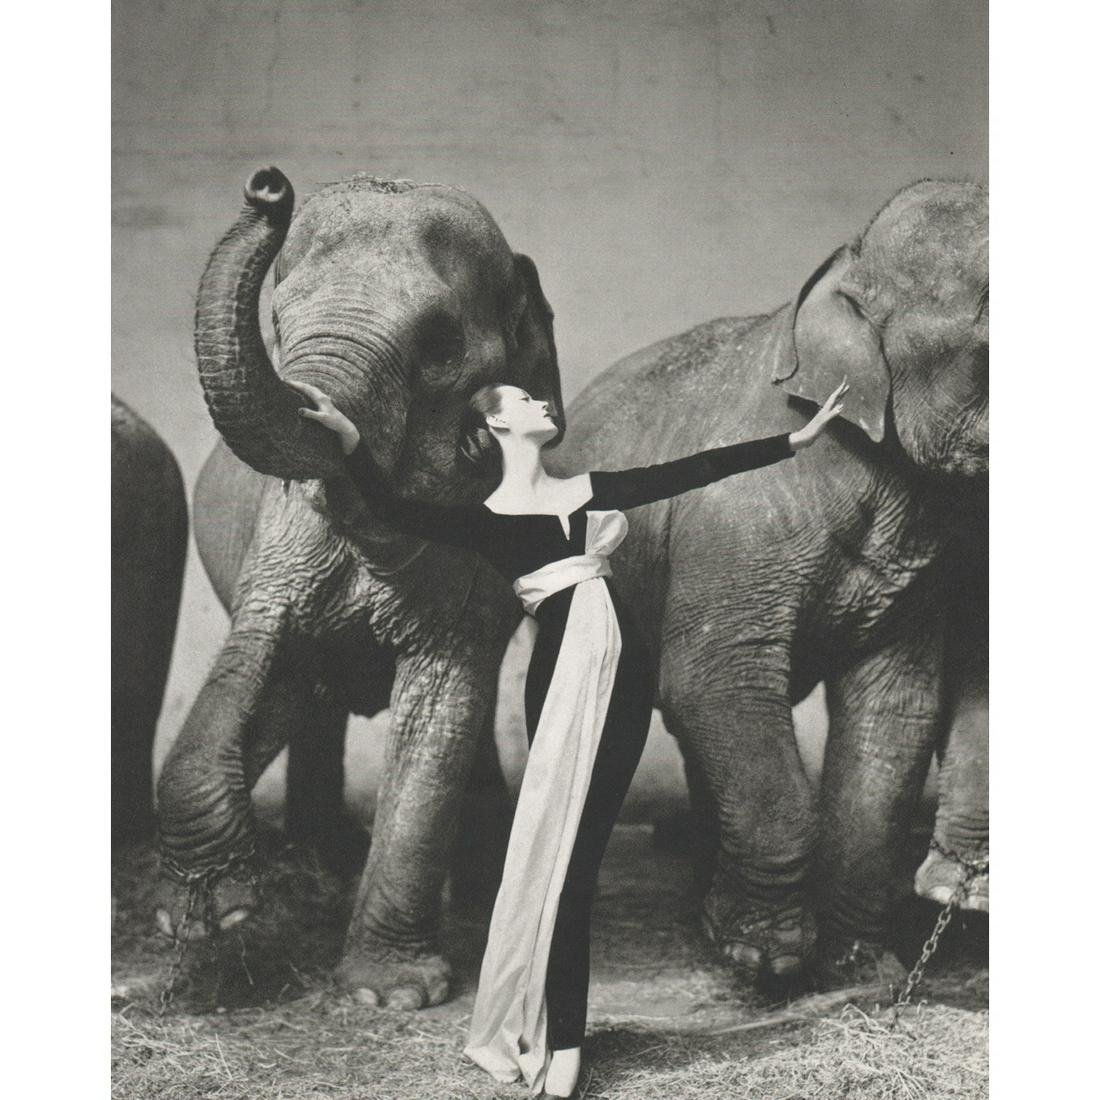 RICHARD AVEDON - Dovima with Elephants, Paris 1955